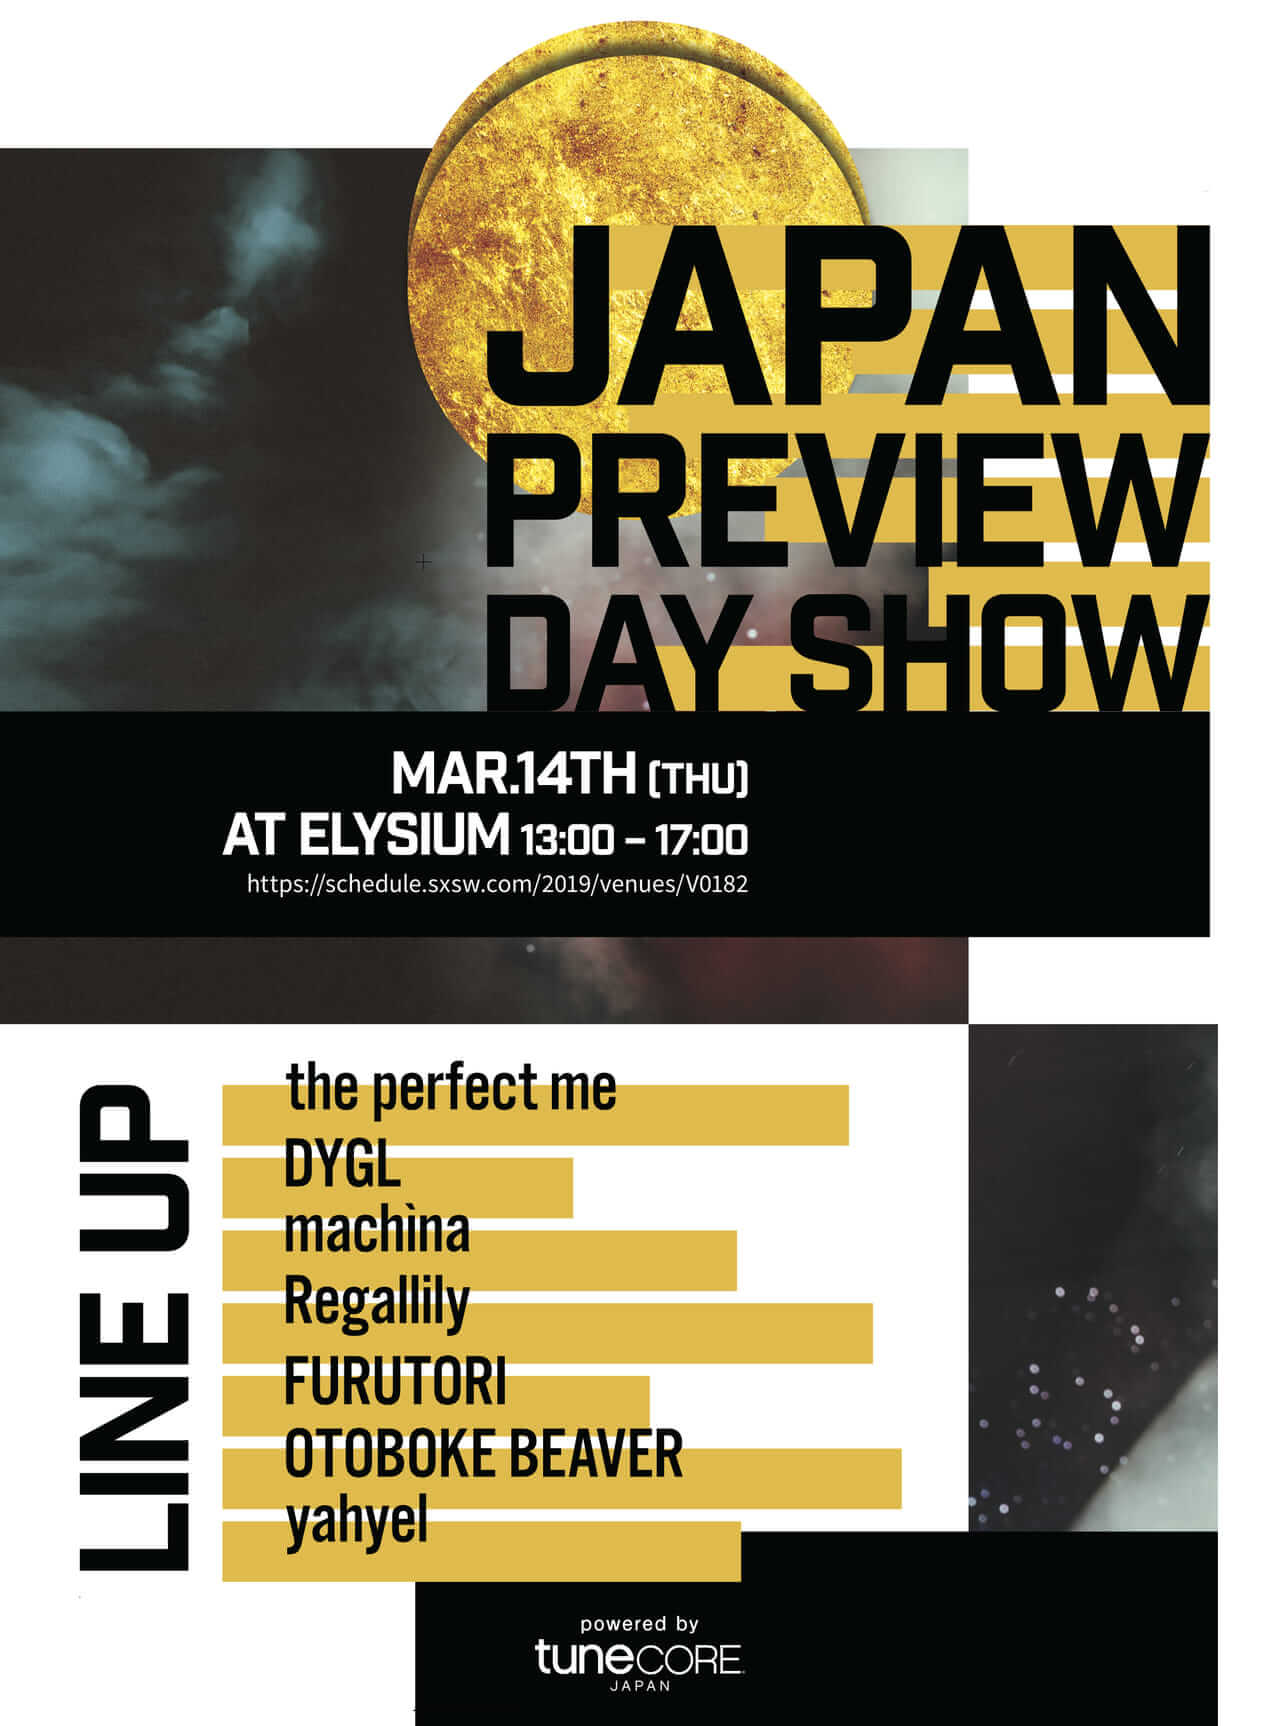 今年も開催のSXSW2019で、JAPAN PREVIEW DAY SHOW (powered by TuneCore Japan) 開催決定 ― DYGL、yahyelなどが出演